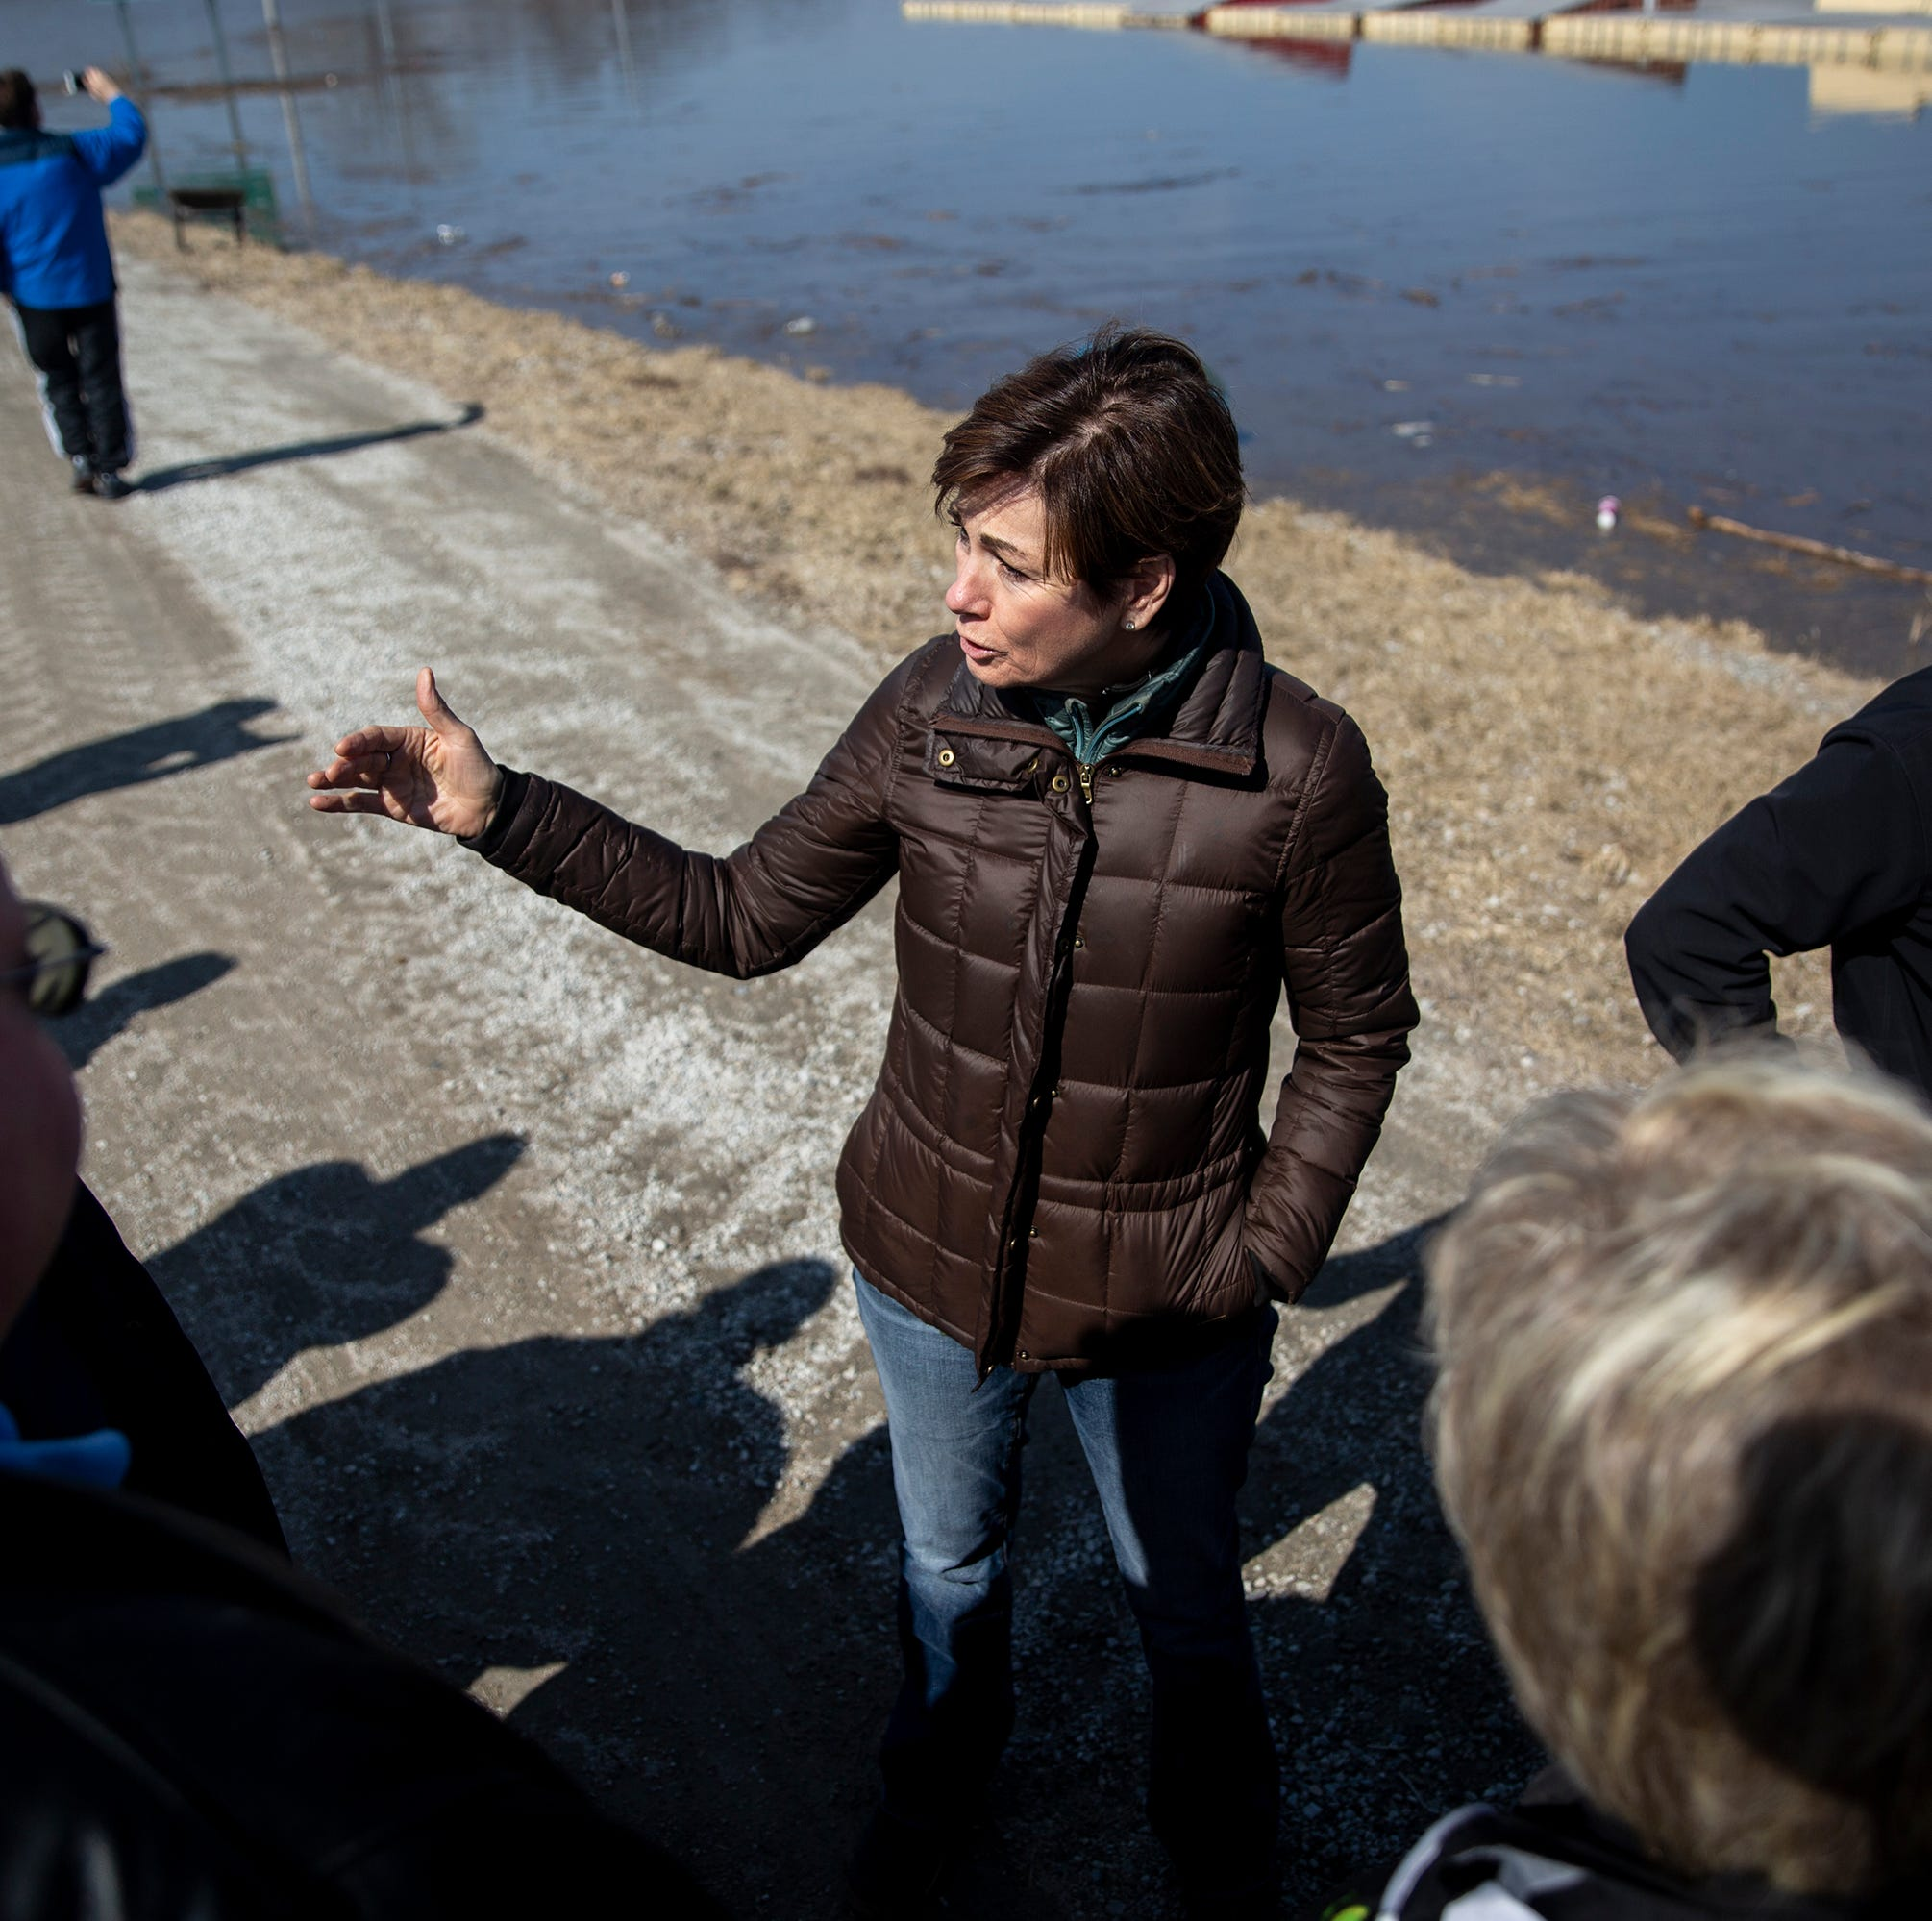 Governor Kim Reynolds tours areas flooded by the Missouri and Platte Rivers on Monday, March 18, 2019, in Mills County.